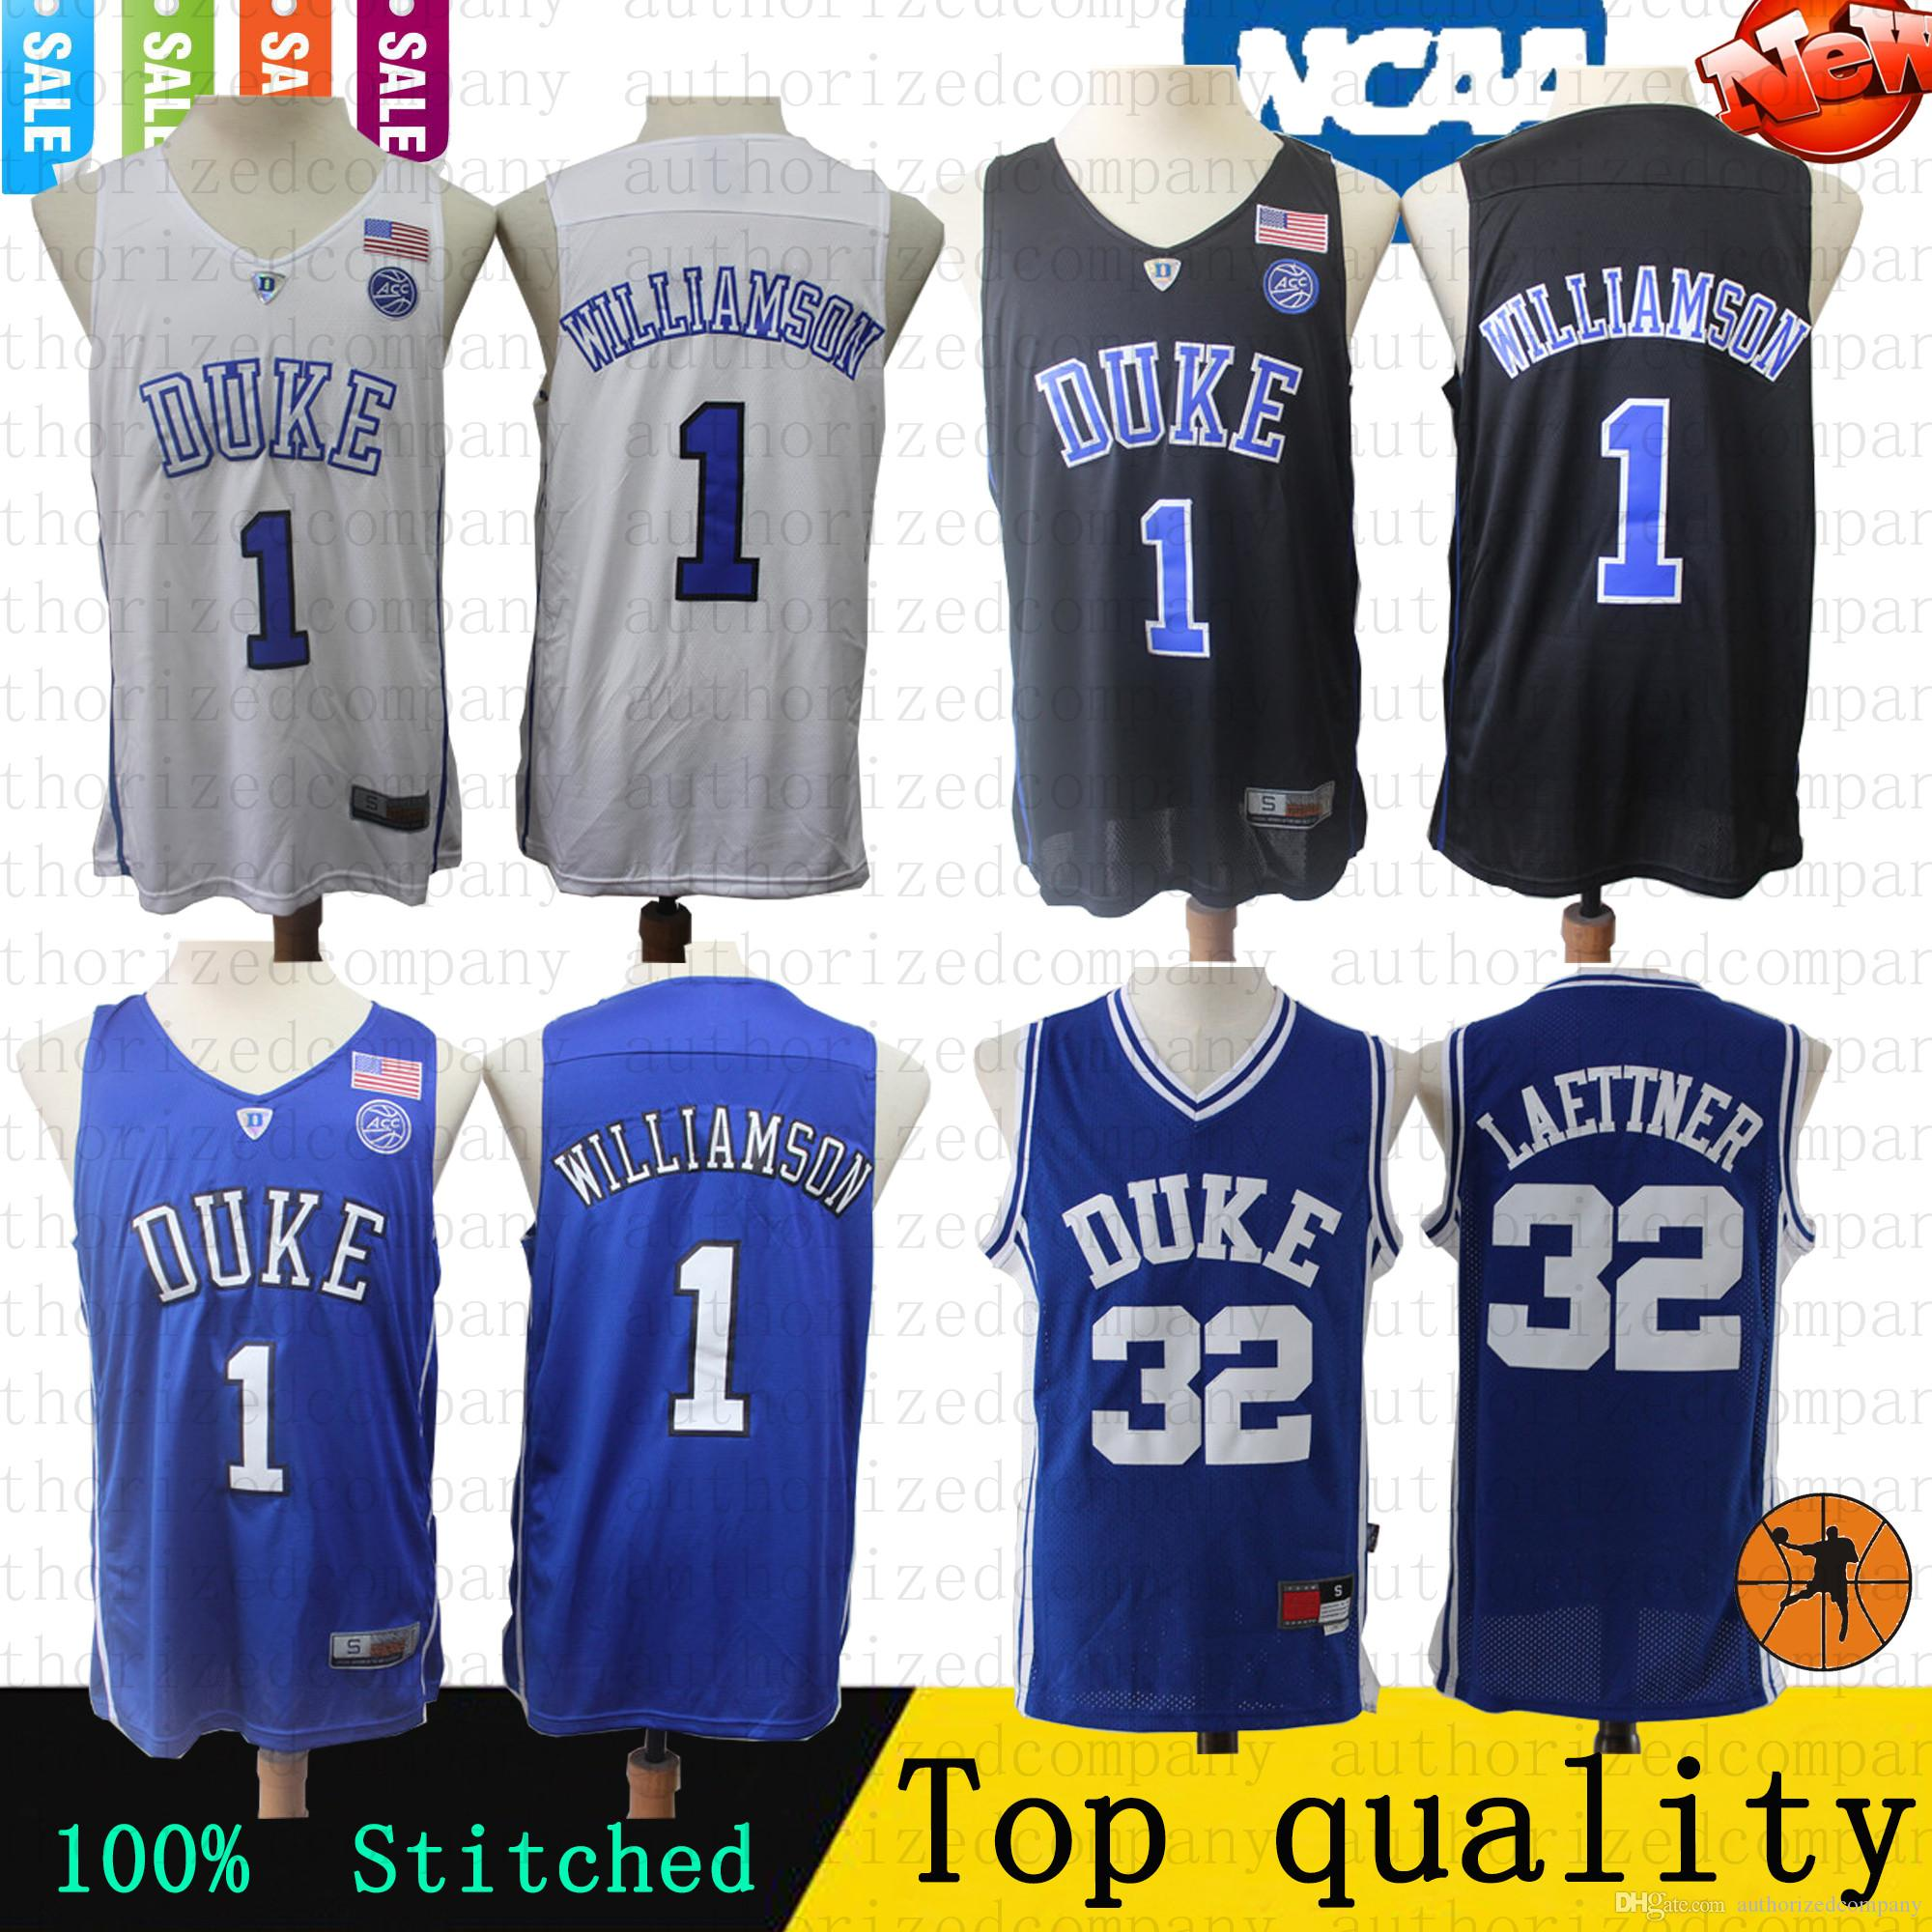 0faa0db1d84 2019 2019 New Top NCAA Basketball Jersey 1 Zion Williamson 32 Christian  Donald Laettner Duke Blue Devils College Jerseys 100% Stitched Top From ...